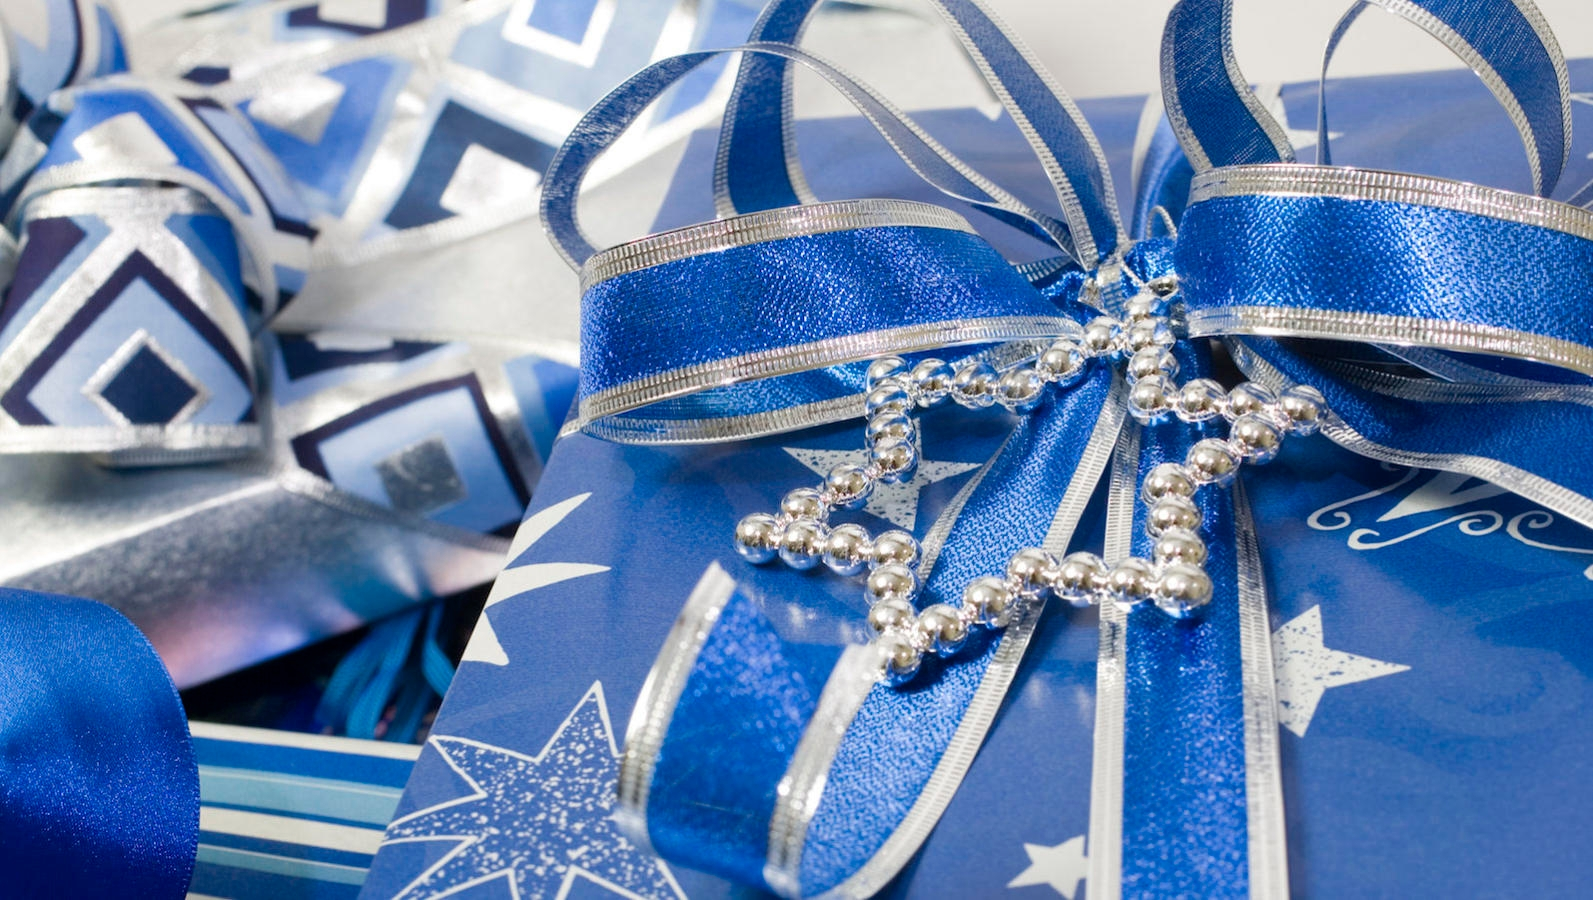 Bar Mitzvah/Bat Mitzvah Gift Guide | My Jewish Learning